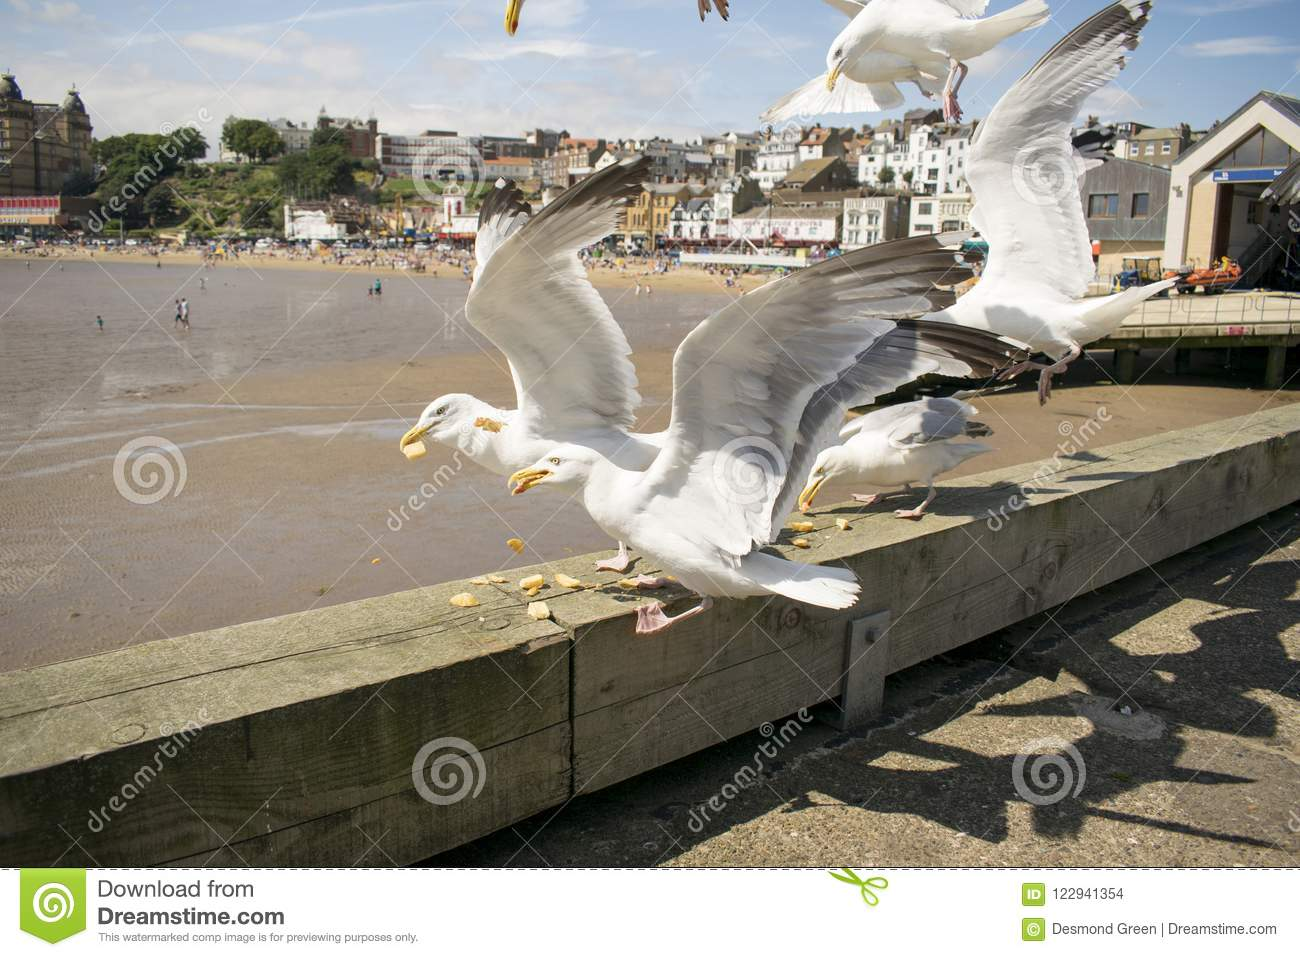 Gaviotas de Scarborough, North Yorkshire, Inglaterra, Reino Unido